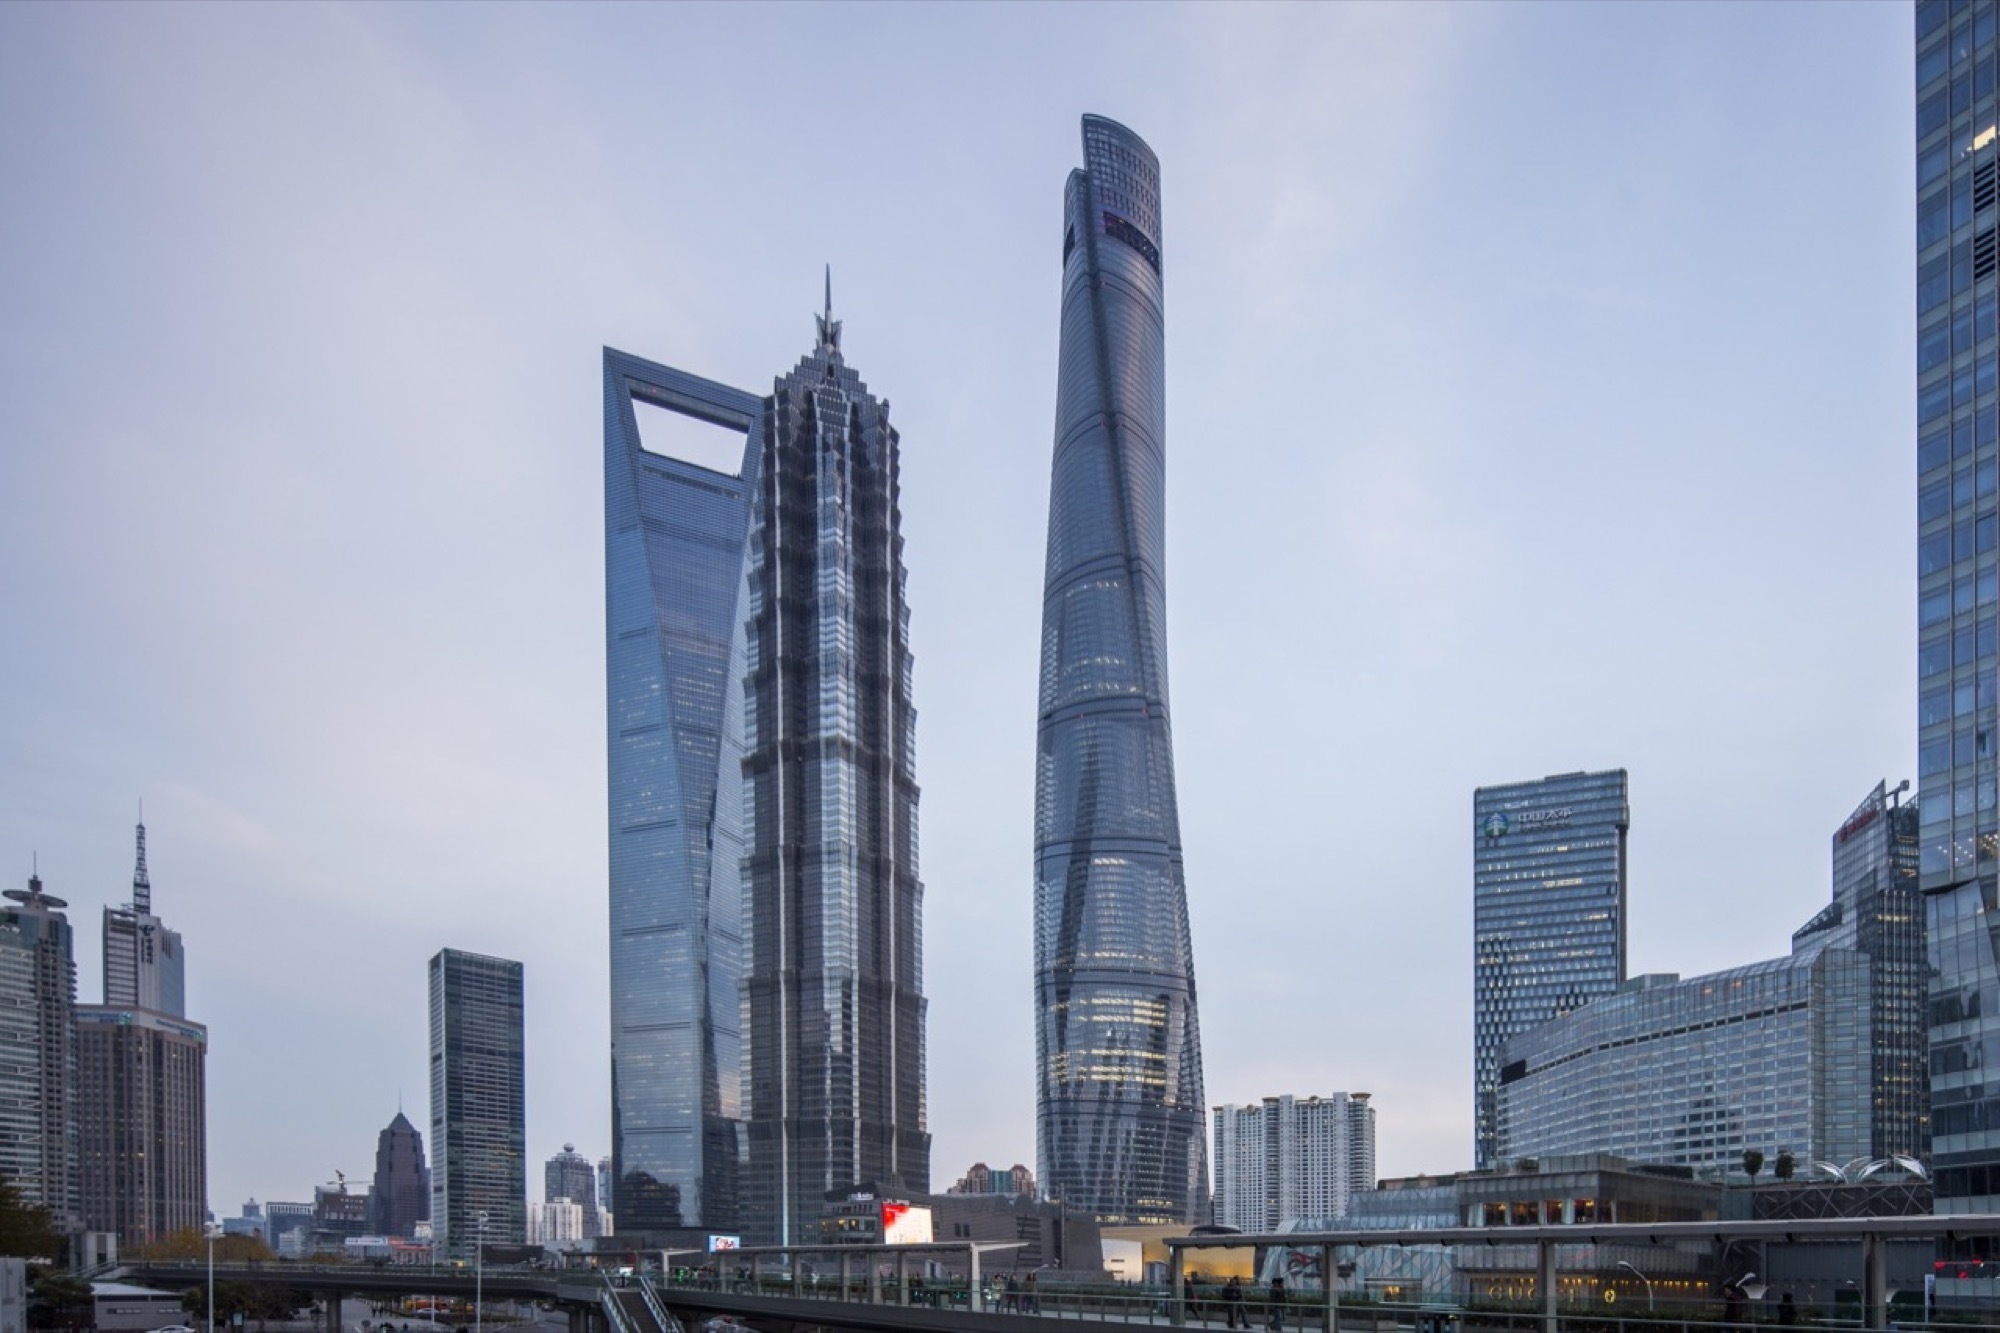 Tallest building in the world, Shanghai Tower